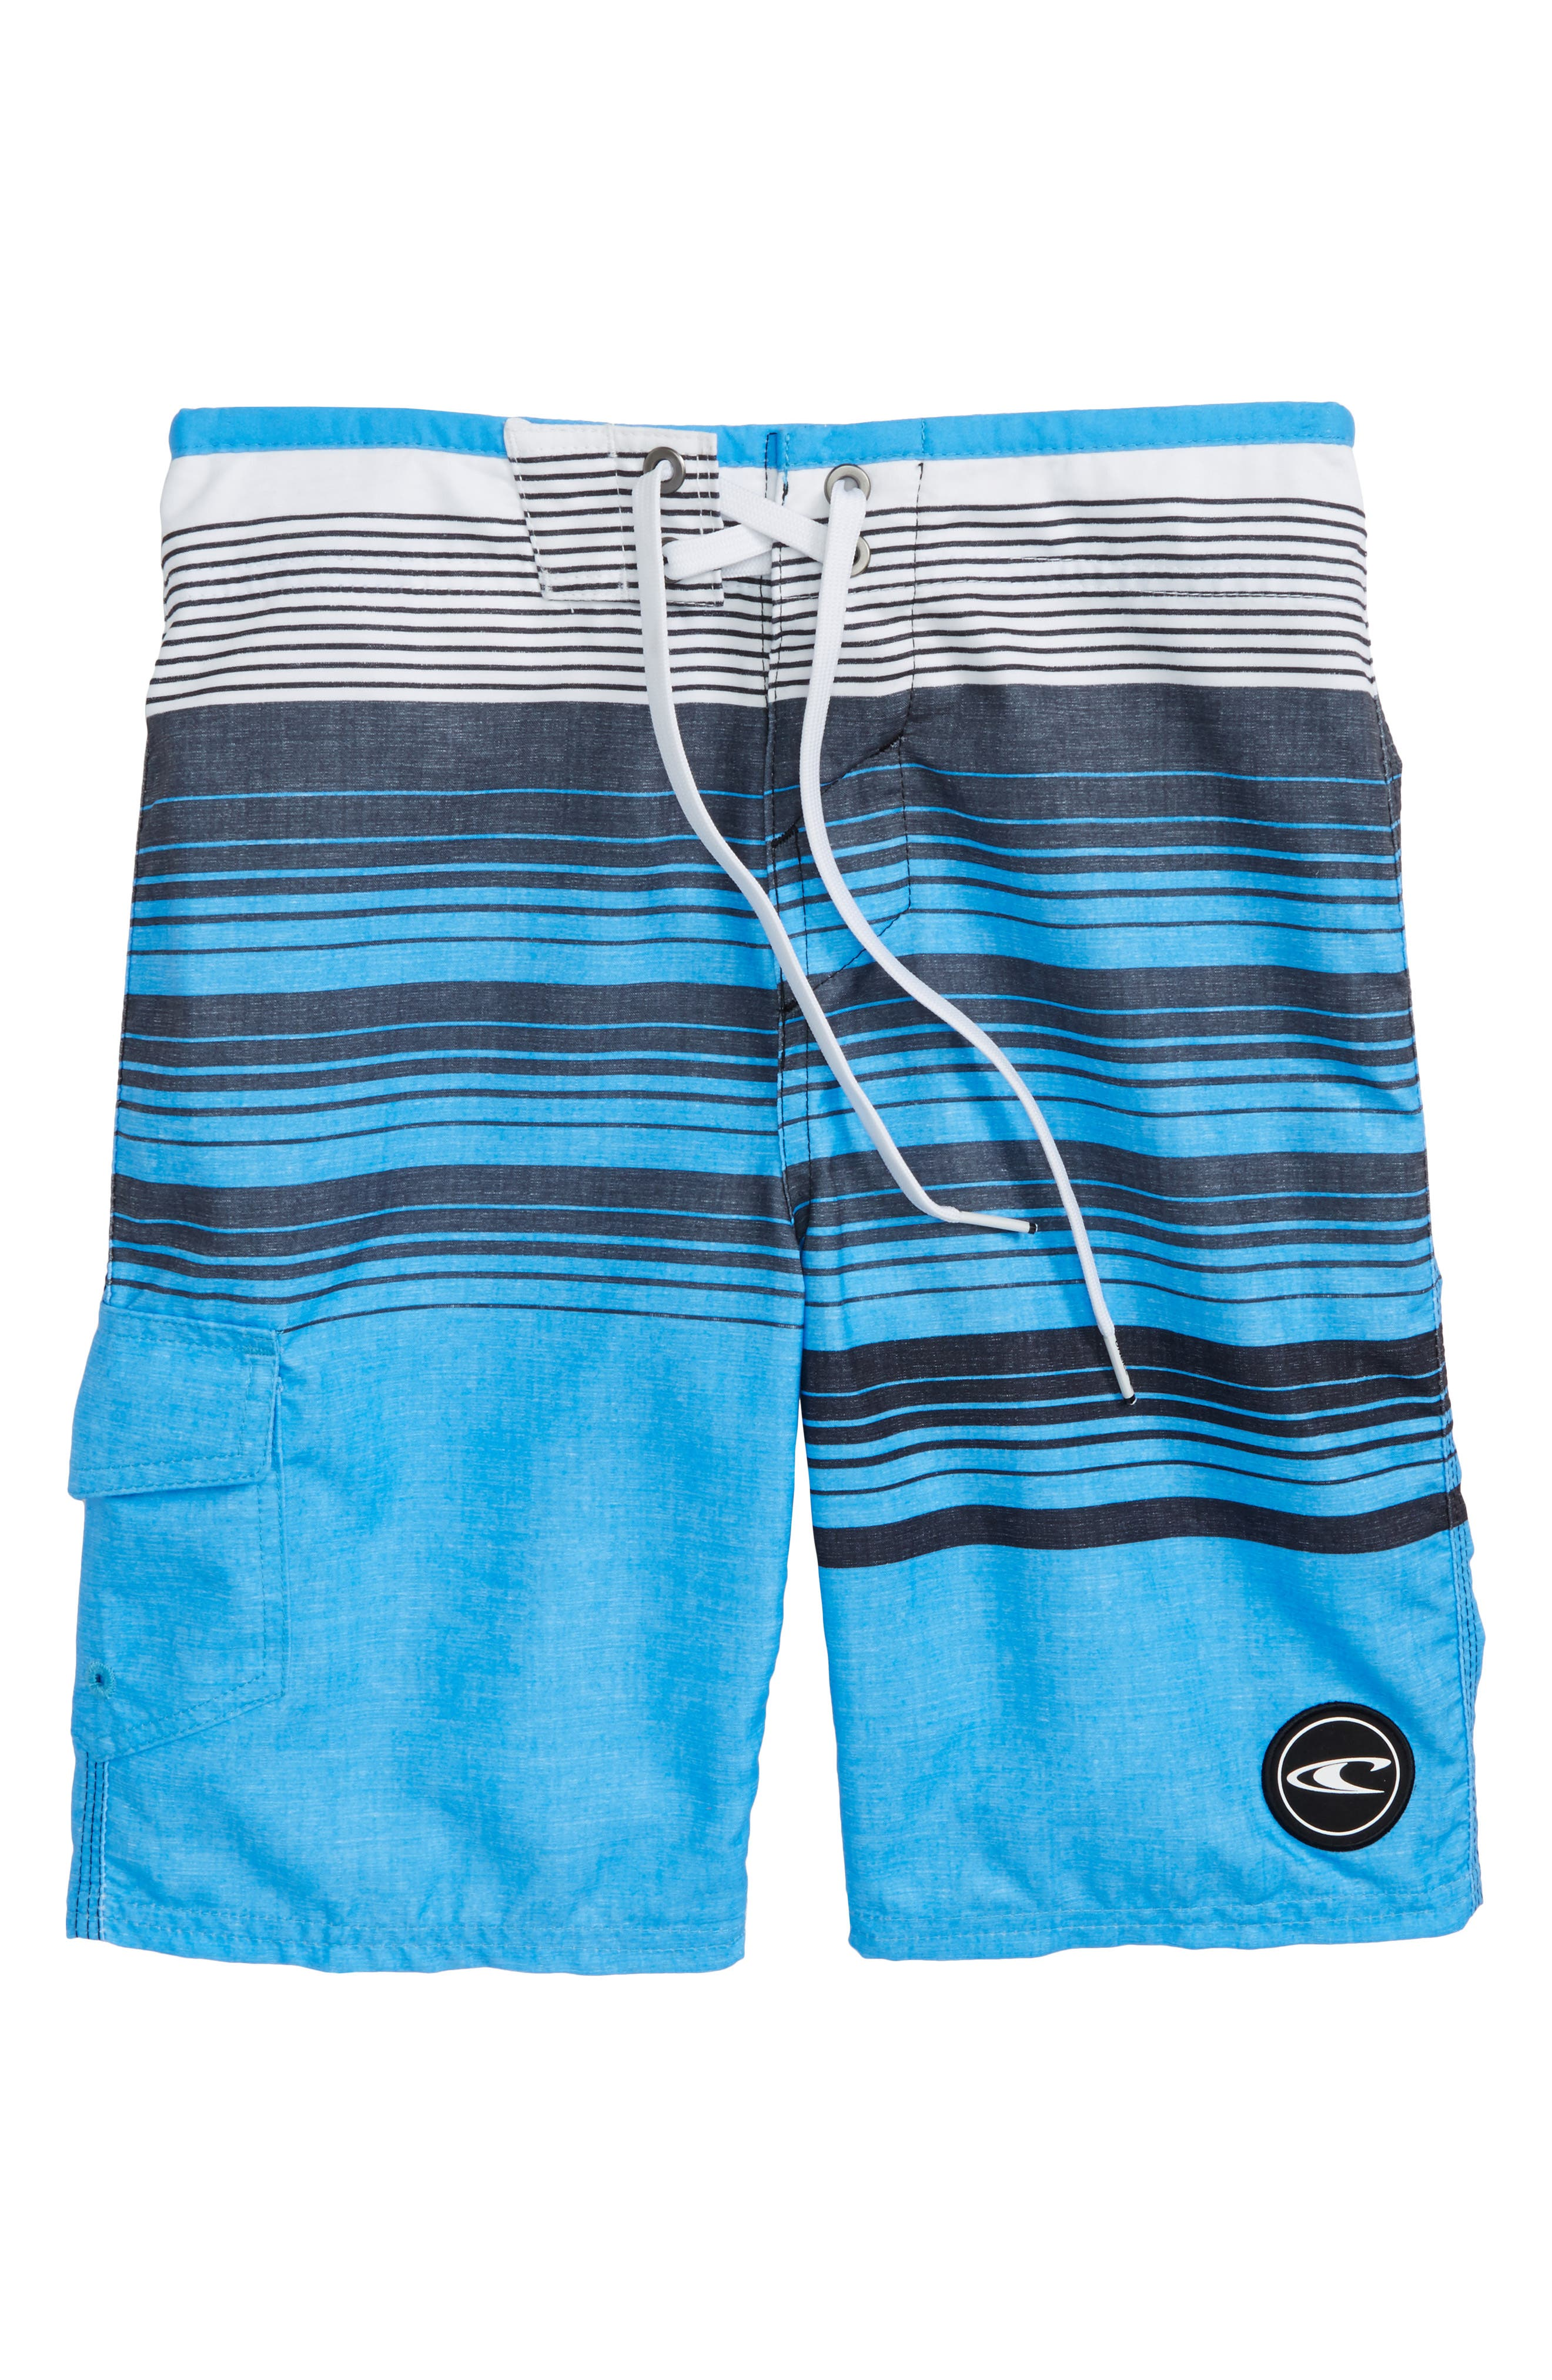 Bennett Board Shorts,                             Main thumbnail 1, color,                             Blue